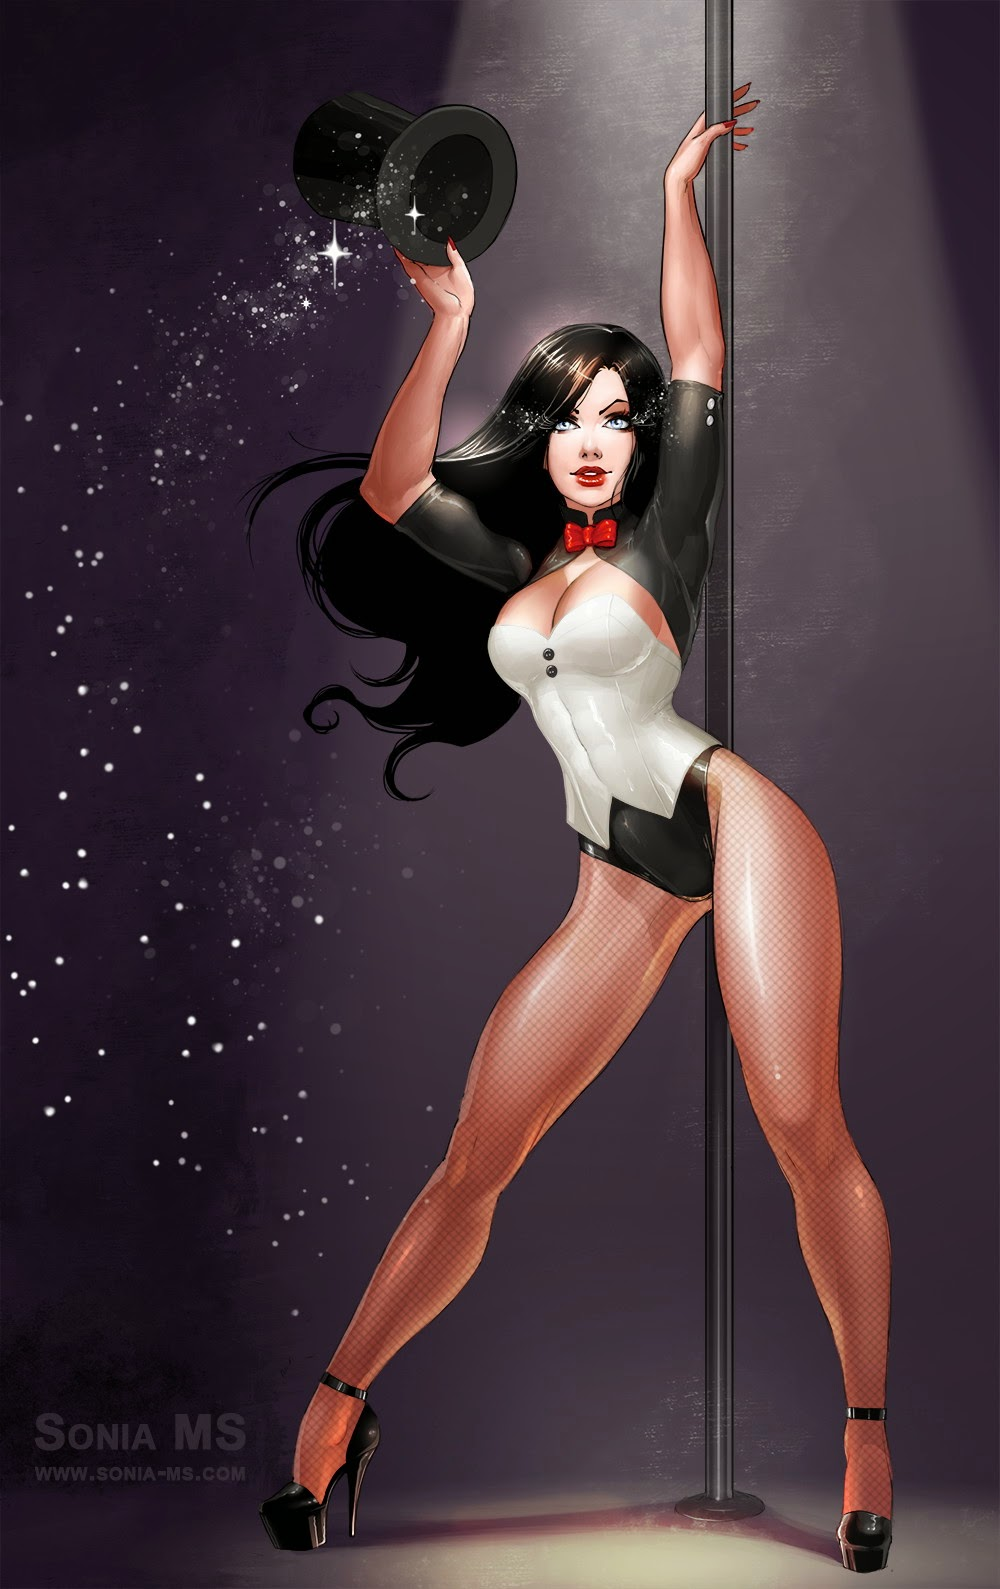 Stars Contemporary Nude Pin Up Art Gif